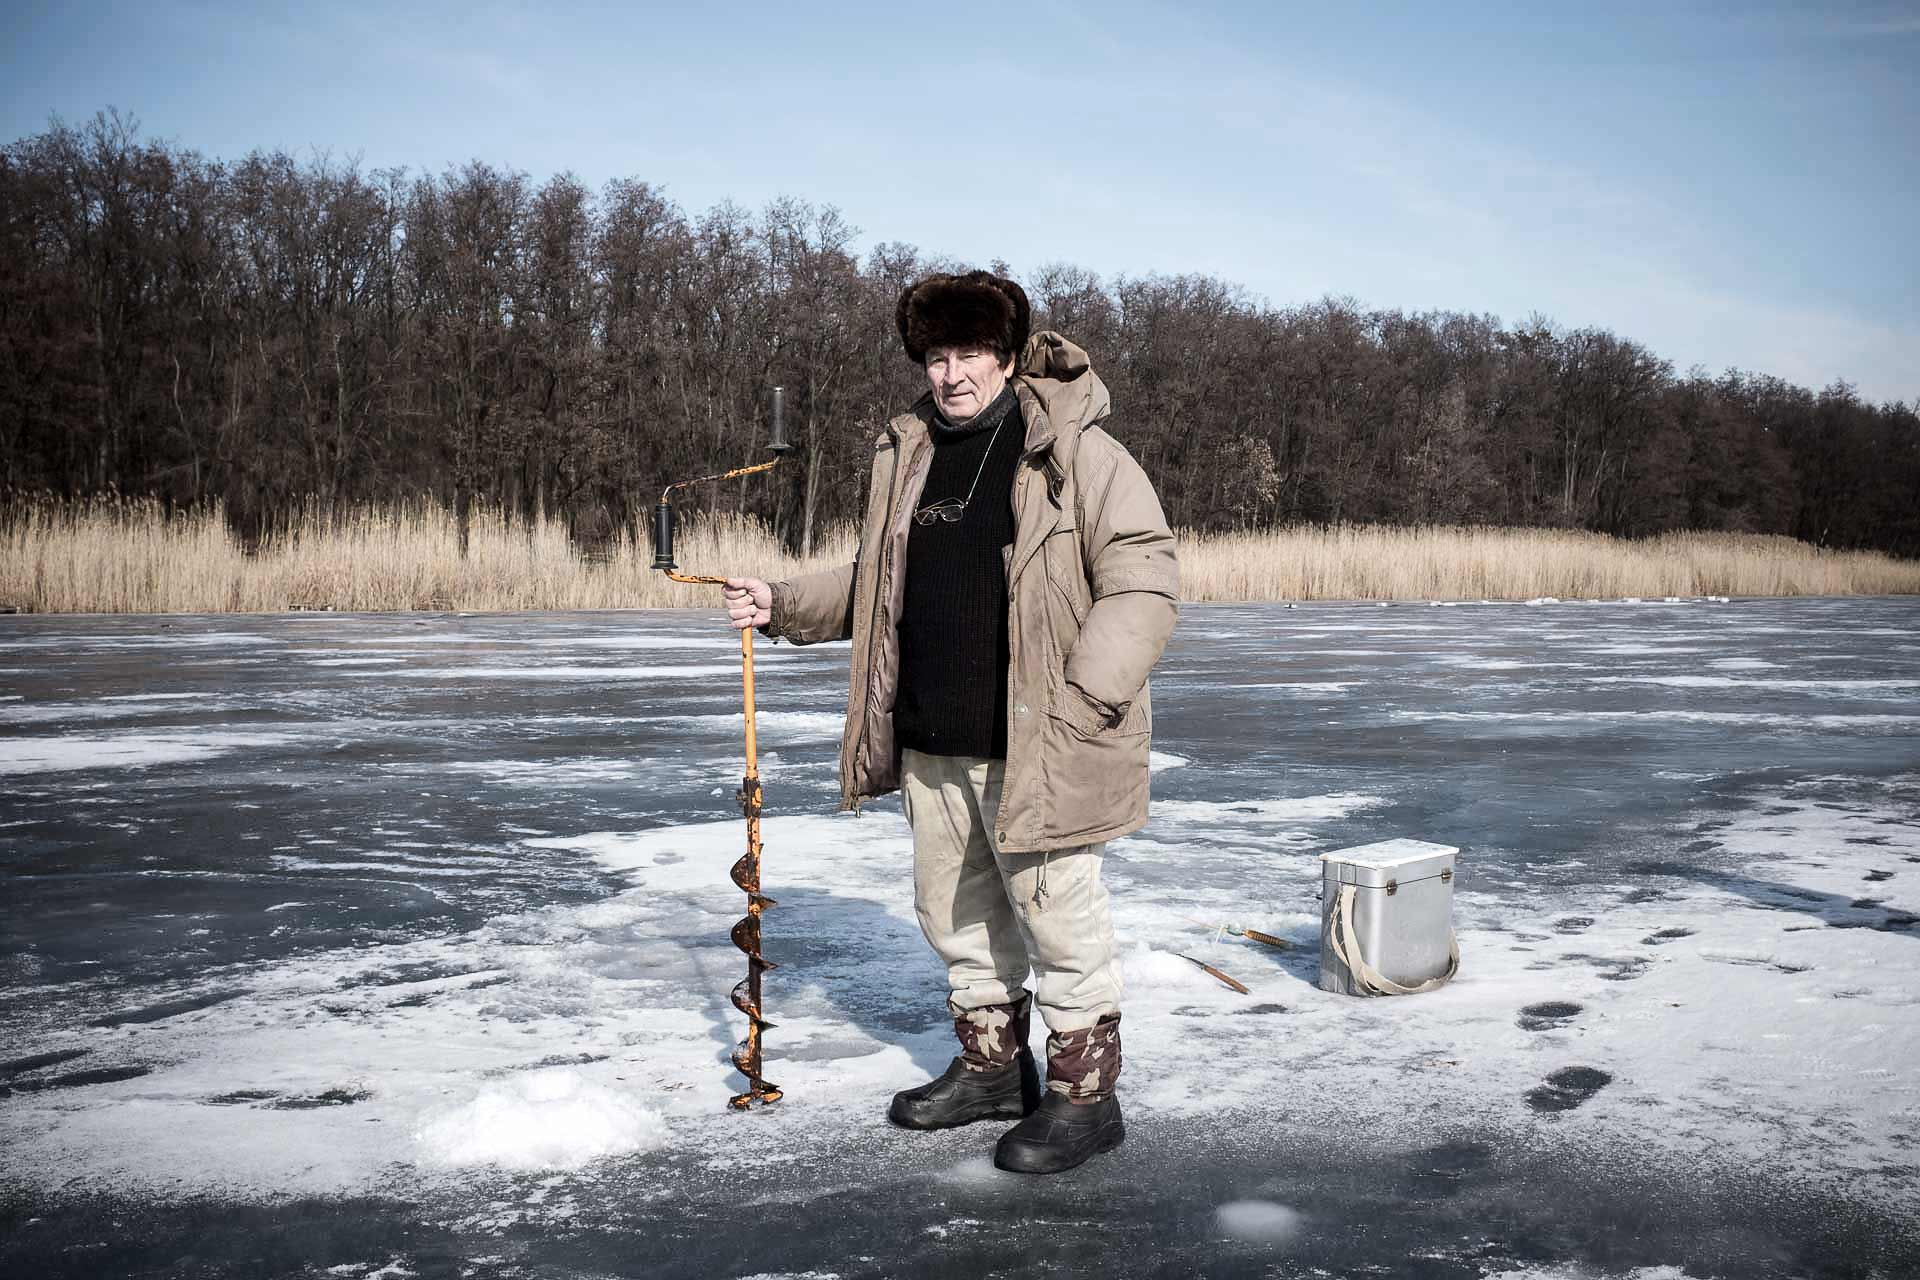 Viktor is a fisherman on Artemivsk lake. Like his fellow fisherman, the catch on this day was poor. Viktor doesn't speak about politics, instead preferring to teach others how to pierce the ice with his huge drill. Bakhmout - UKRAINE